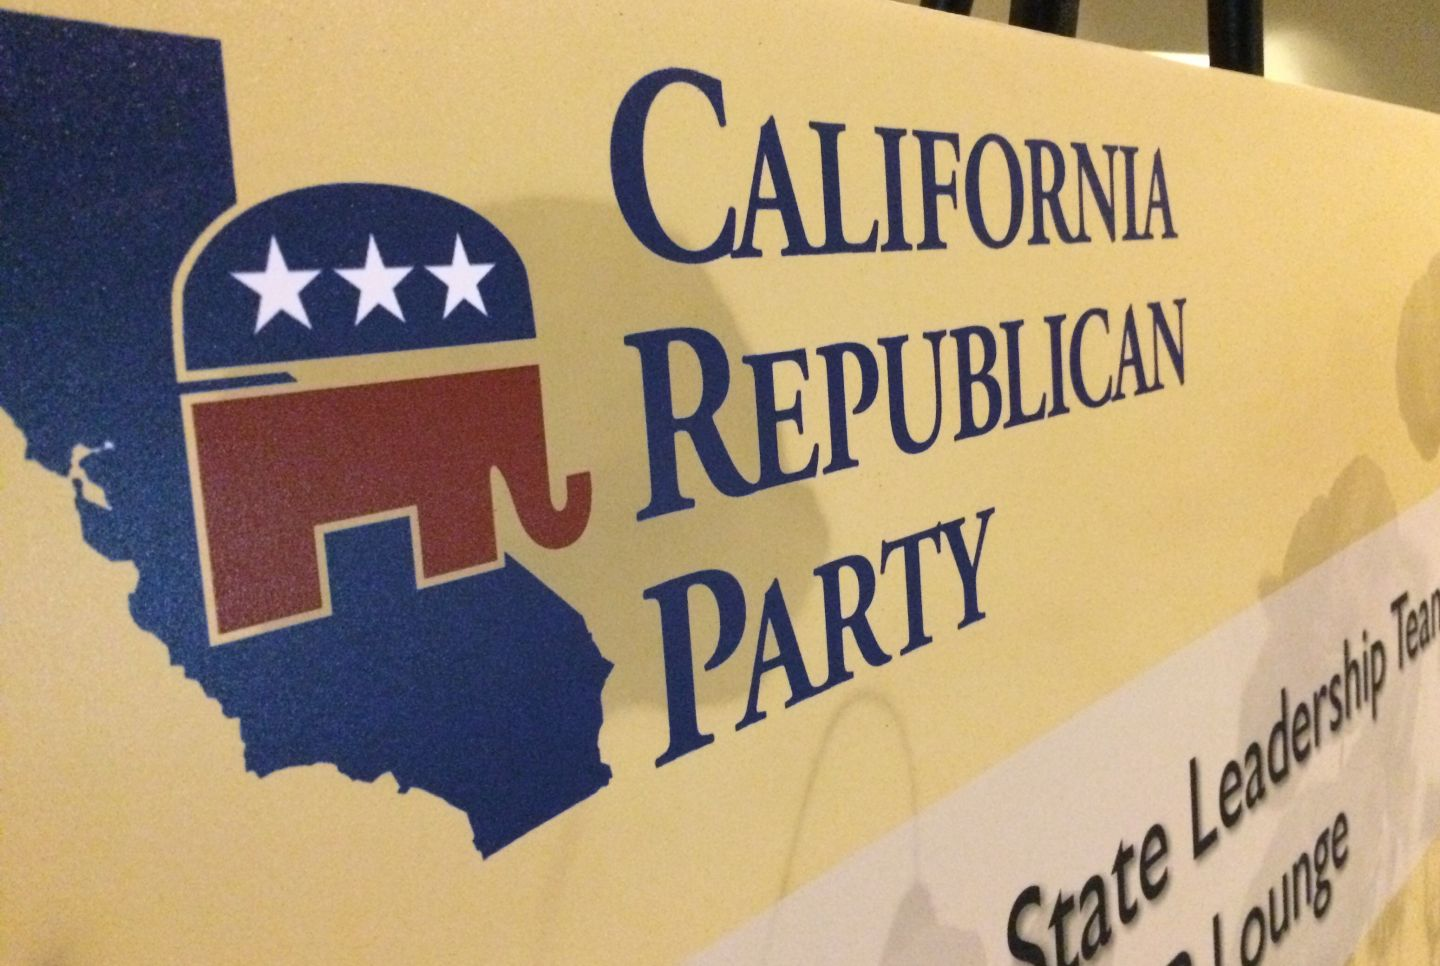 After a Disastrous Election, Will a New Leader Move California's GOP to the Right?